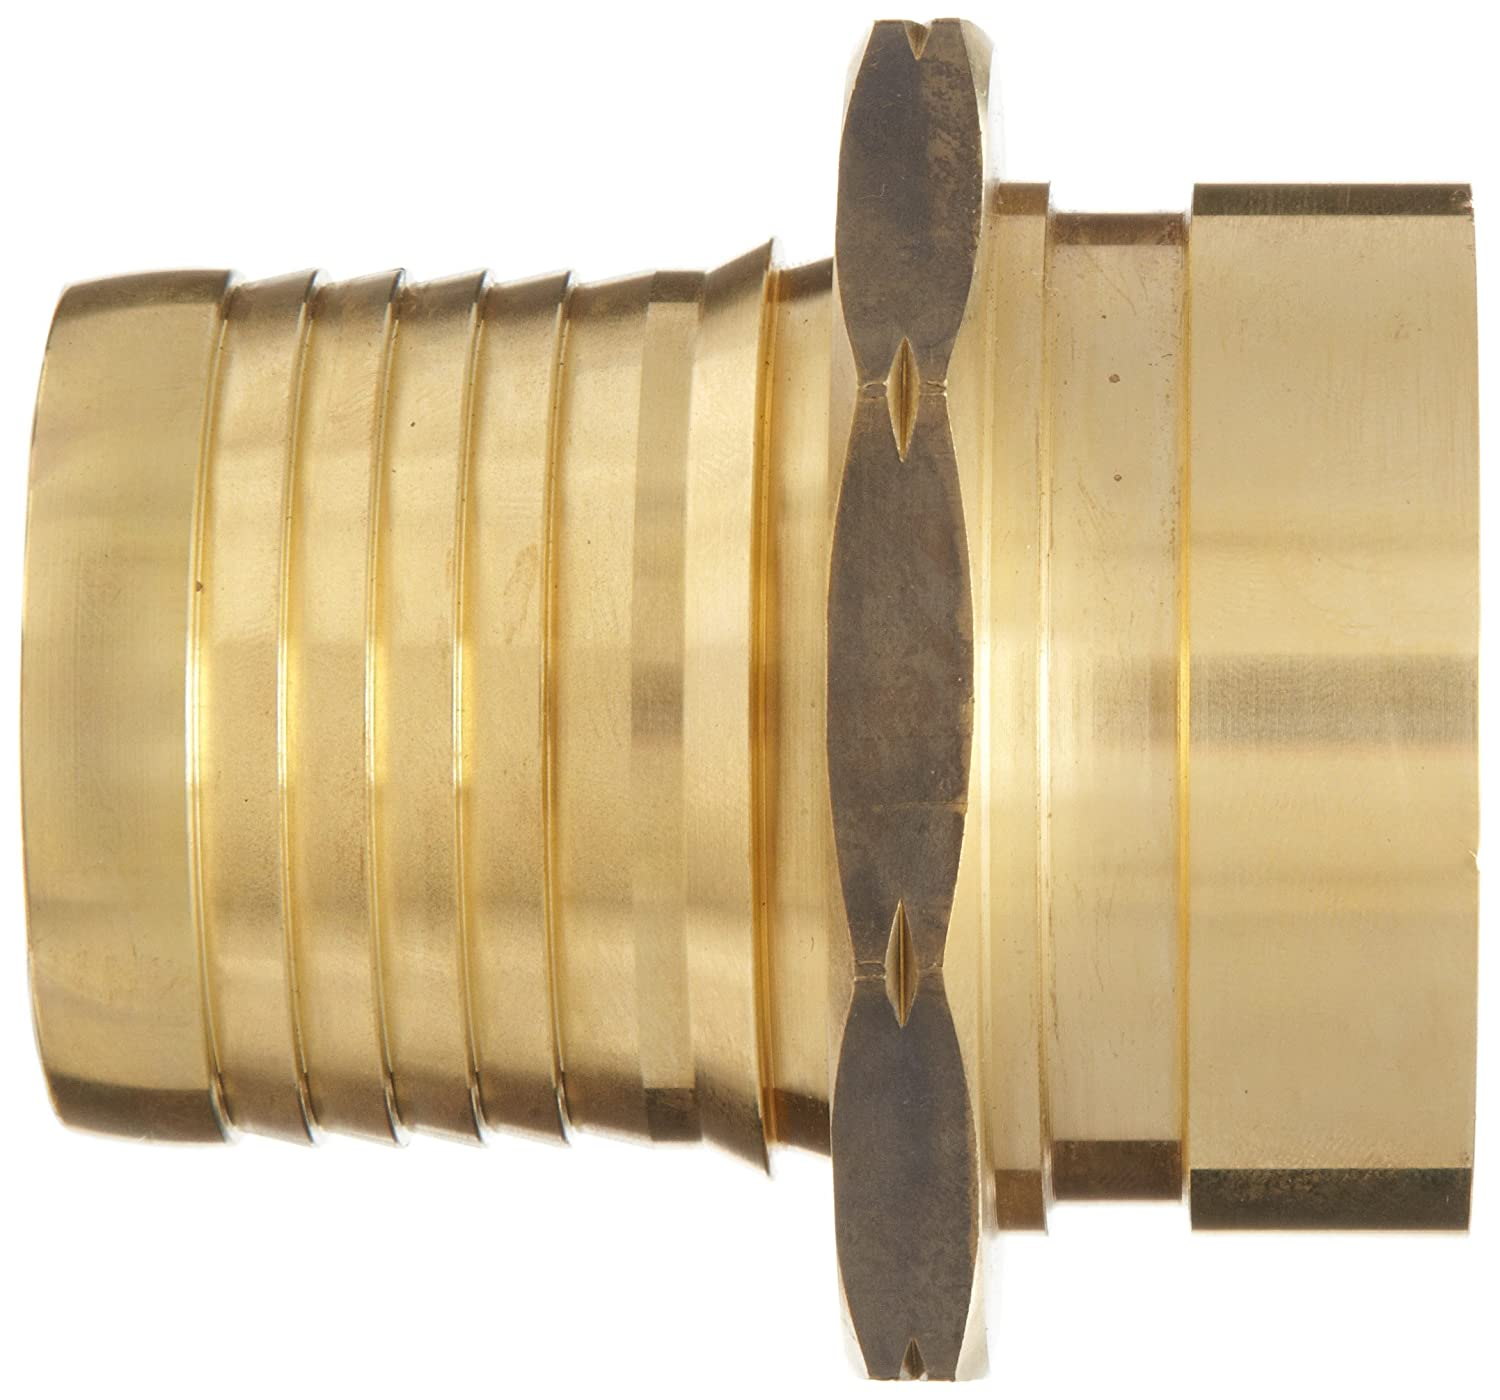 2 Grooved End x 2 Hose ID Barbed 2 Grooved End x 2 Hose ID Barbed Dixon Valve /& Coupling Dixon G5242 Brass Scovill Style Internally Expanded Permanent Holedall Fitting Groove Coupler